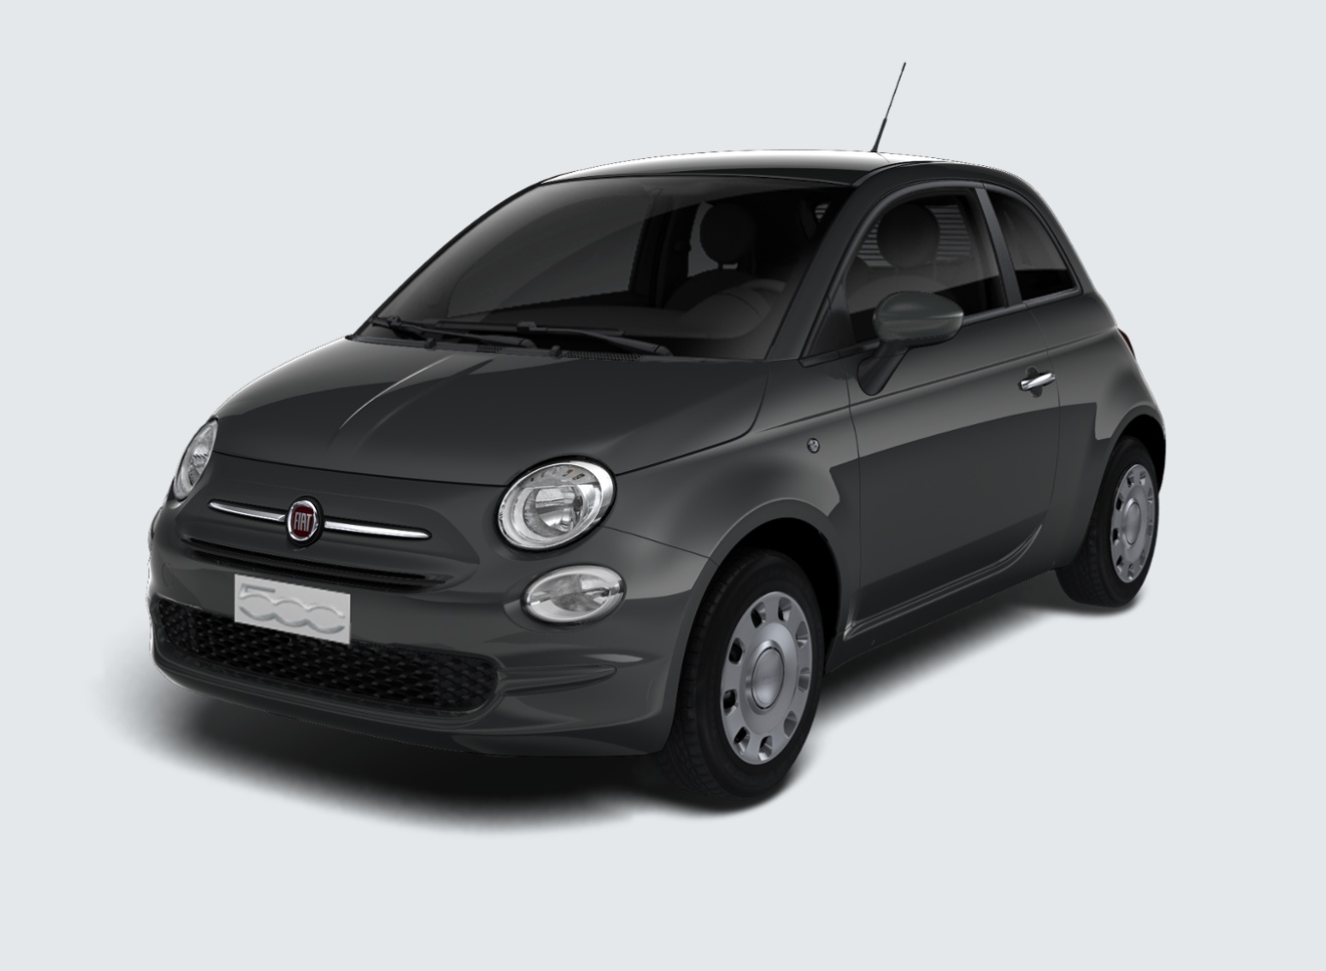 fiat 500 1 2 69cv pop grigio carrara km0 a soli 10390 su miacar dgl0f. Black Bedroom Furniture Sets. Home Design Ideas